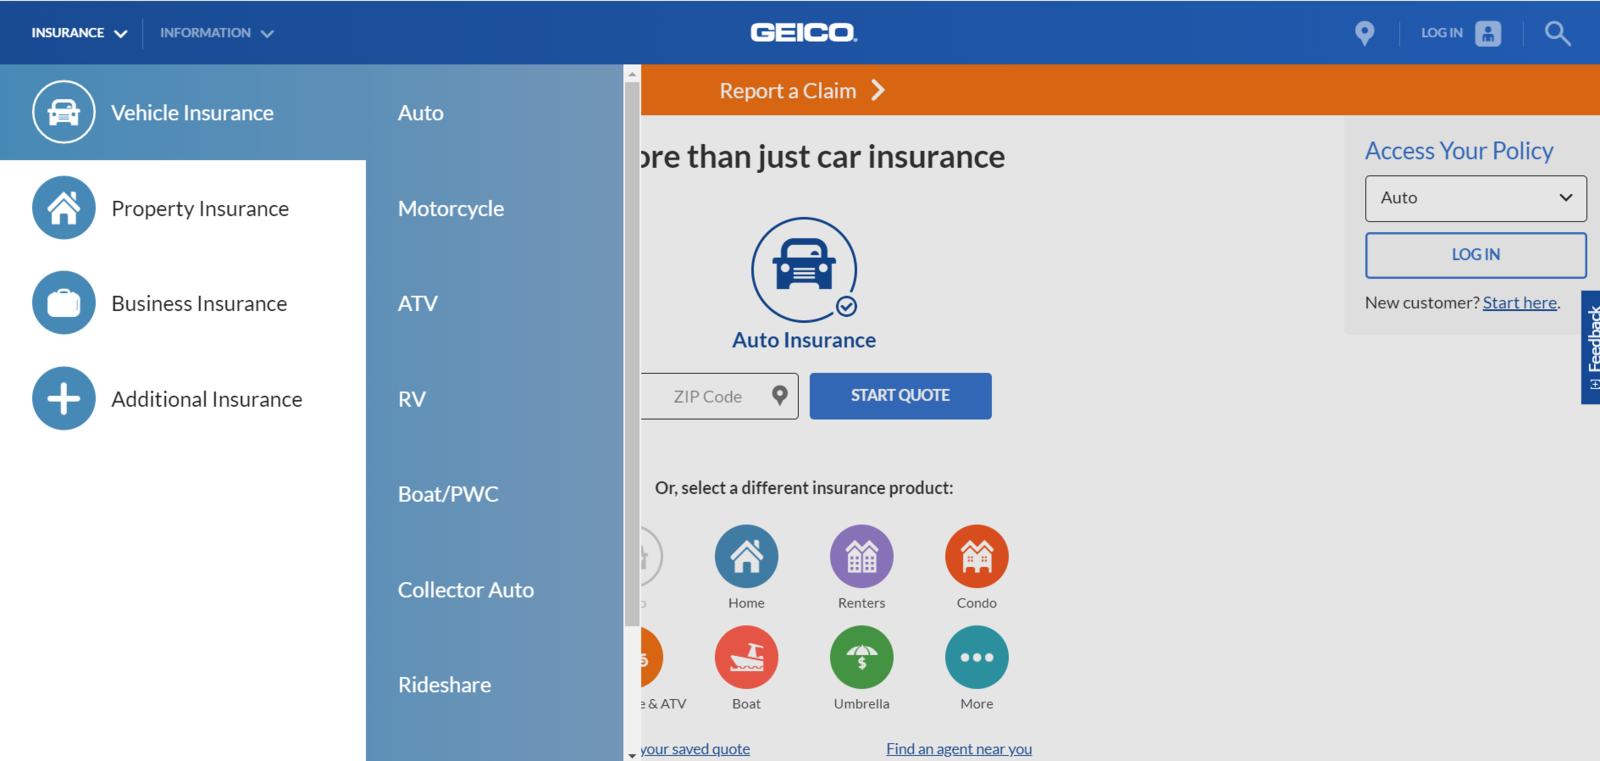 geico mobile website insurance drop down menu screen